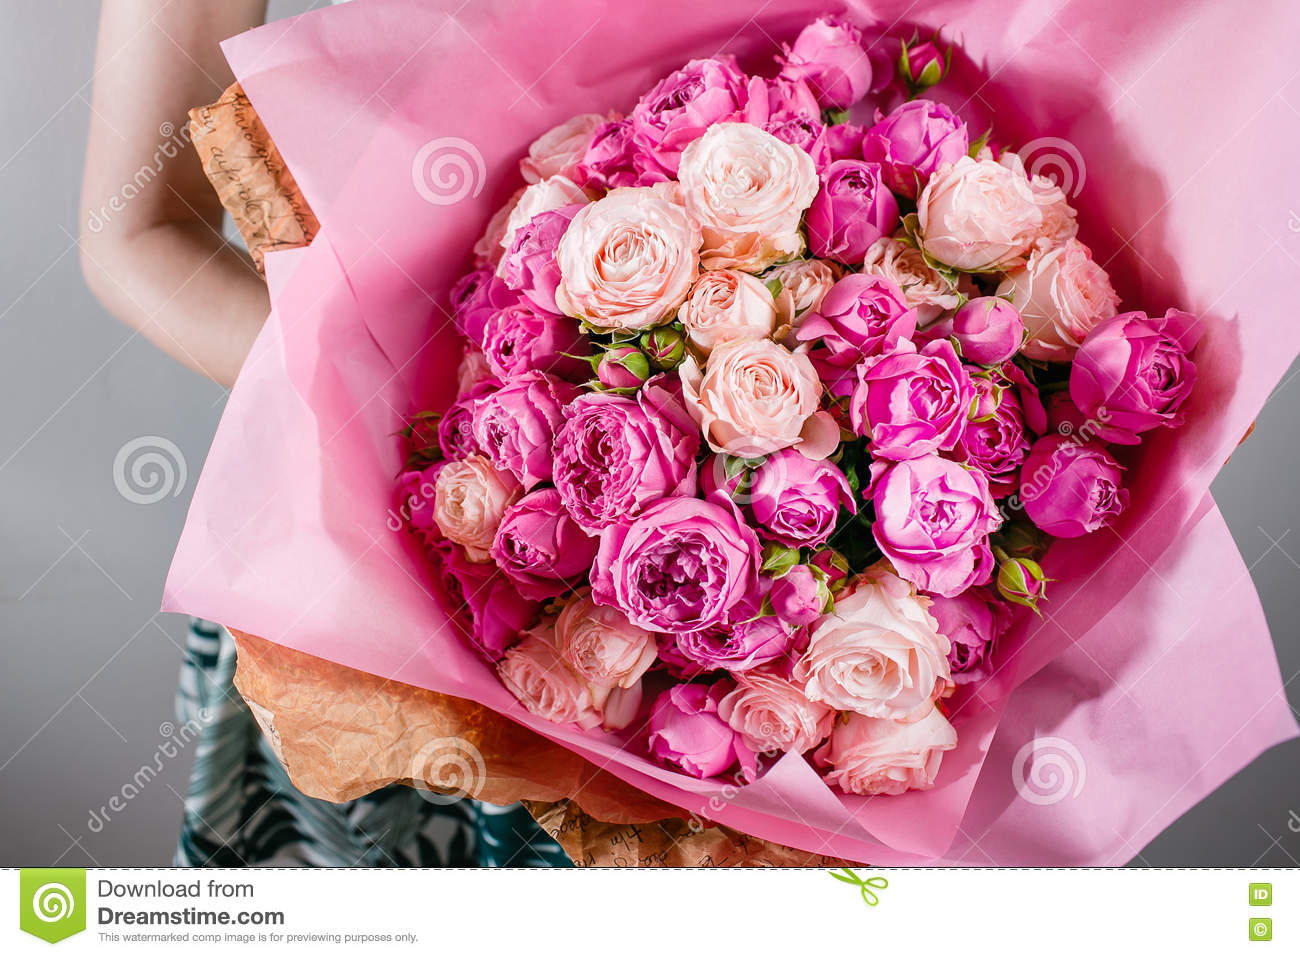 Luxury bouquets of flowers pink colour peonies and roses in the luxury bouquets of flowers pink colour peonies and roses in the hands women royalty free stock photo download luxury bouquets of flowers izmirmasajfo